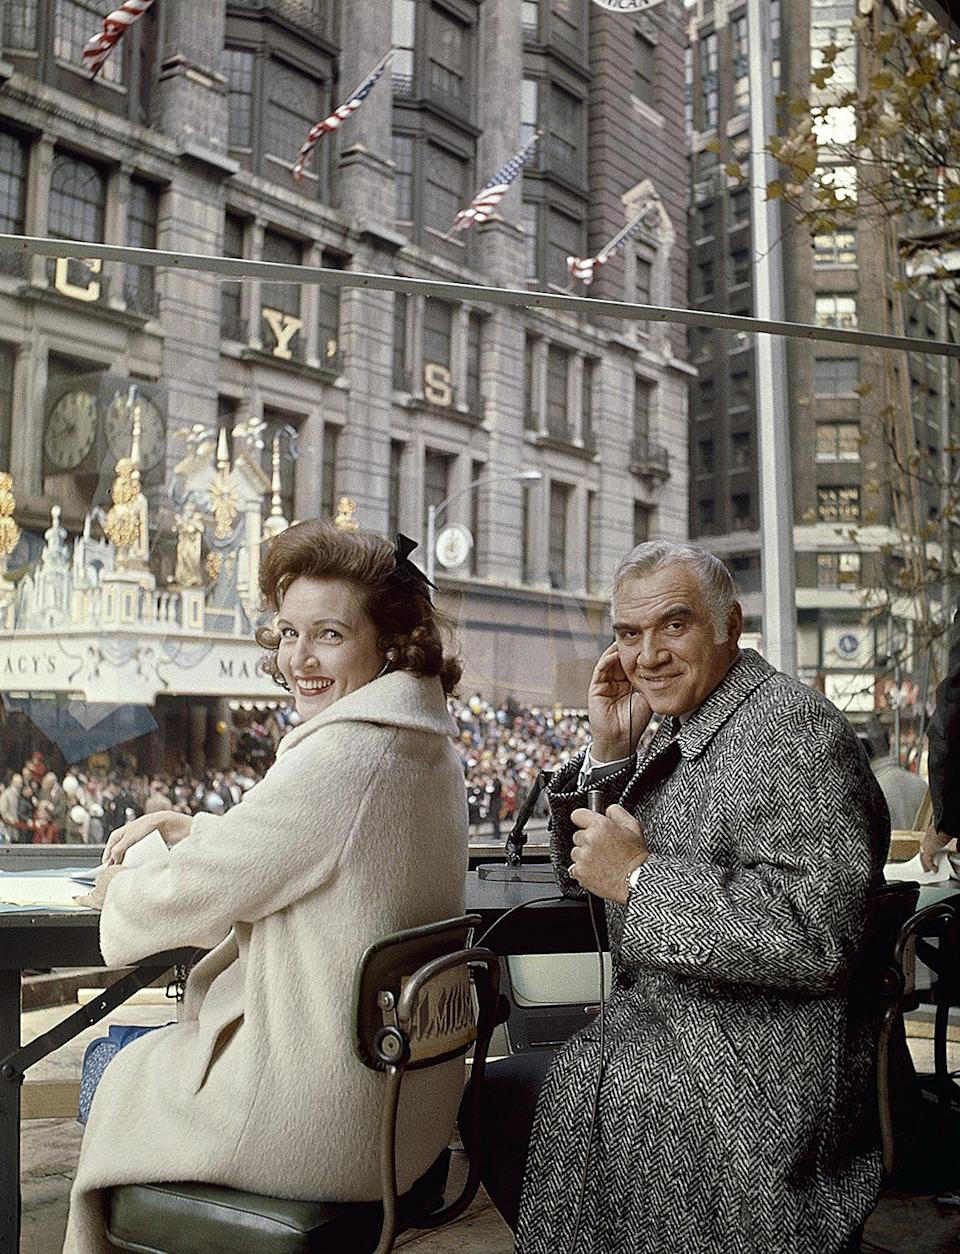 <p>She also was the host of some pretty coveted gigs herself! She hosted the Macy's Thanksgiving Day Parade for 10 years alongside Lorne Greene. Here, the pair sits and watches as floats go by in 1965. </p>